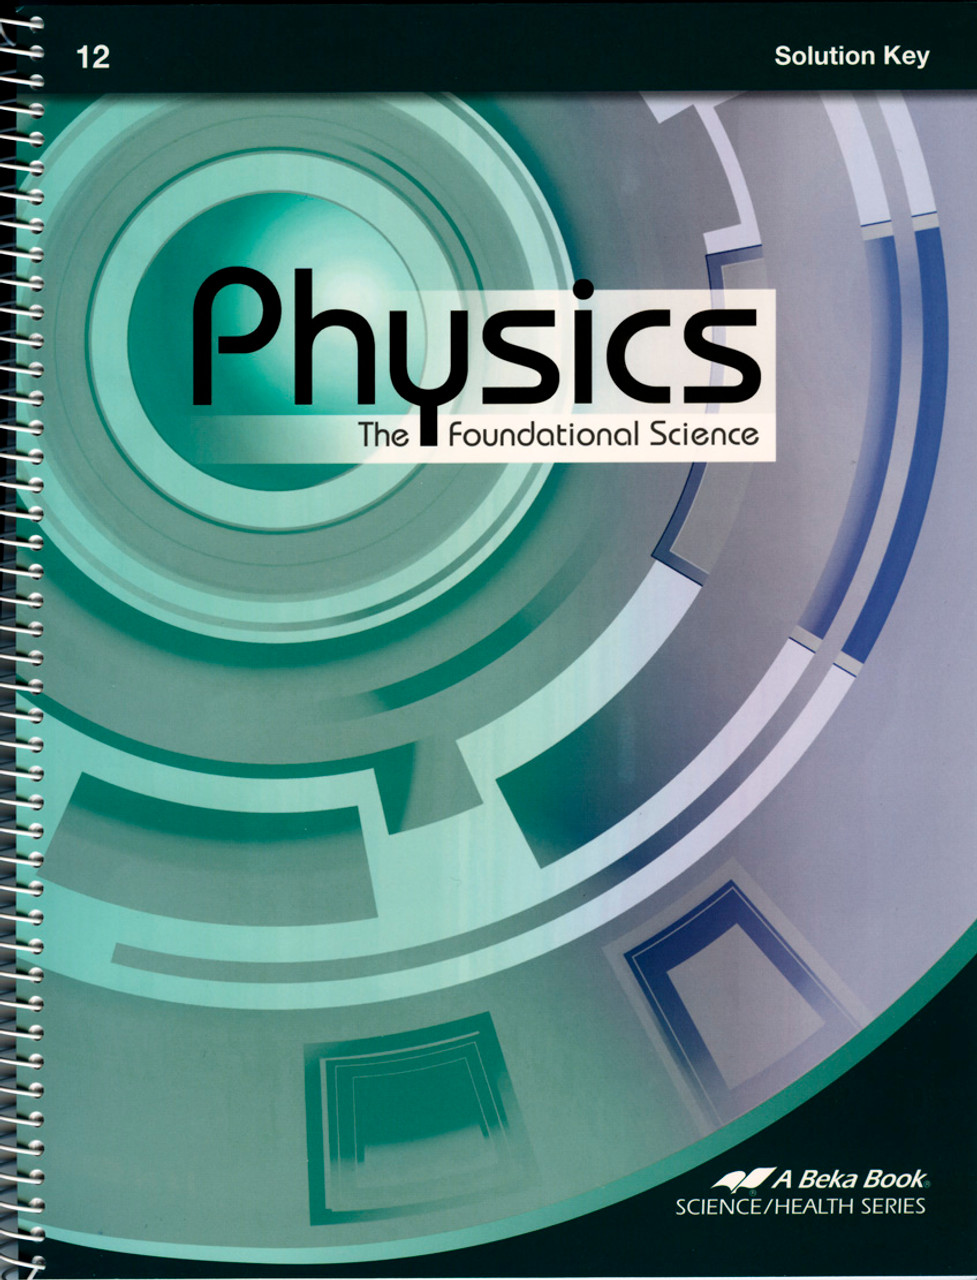 Physics: The Foundational Science, 2nd edition - Solution Key